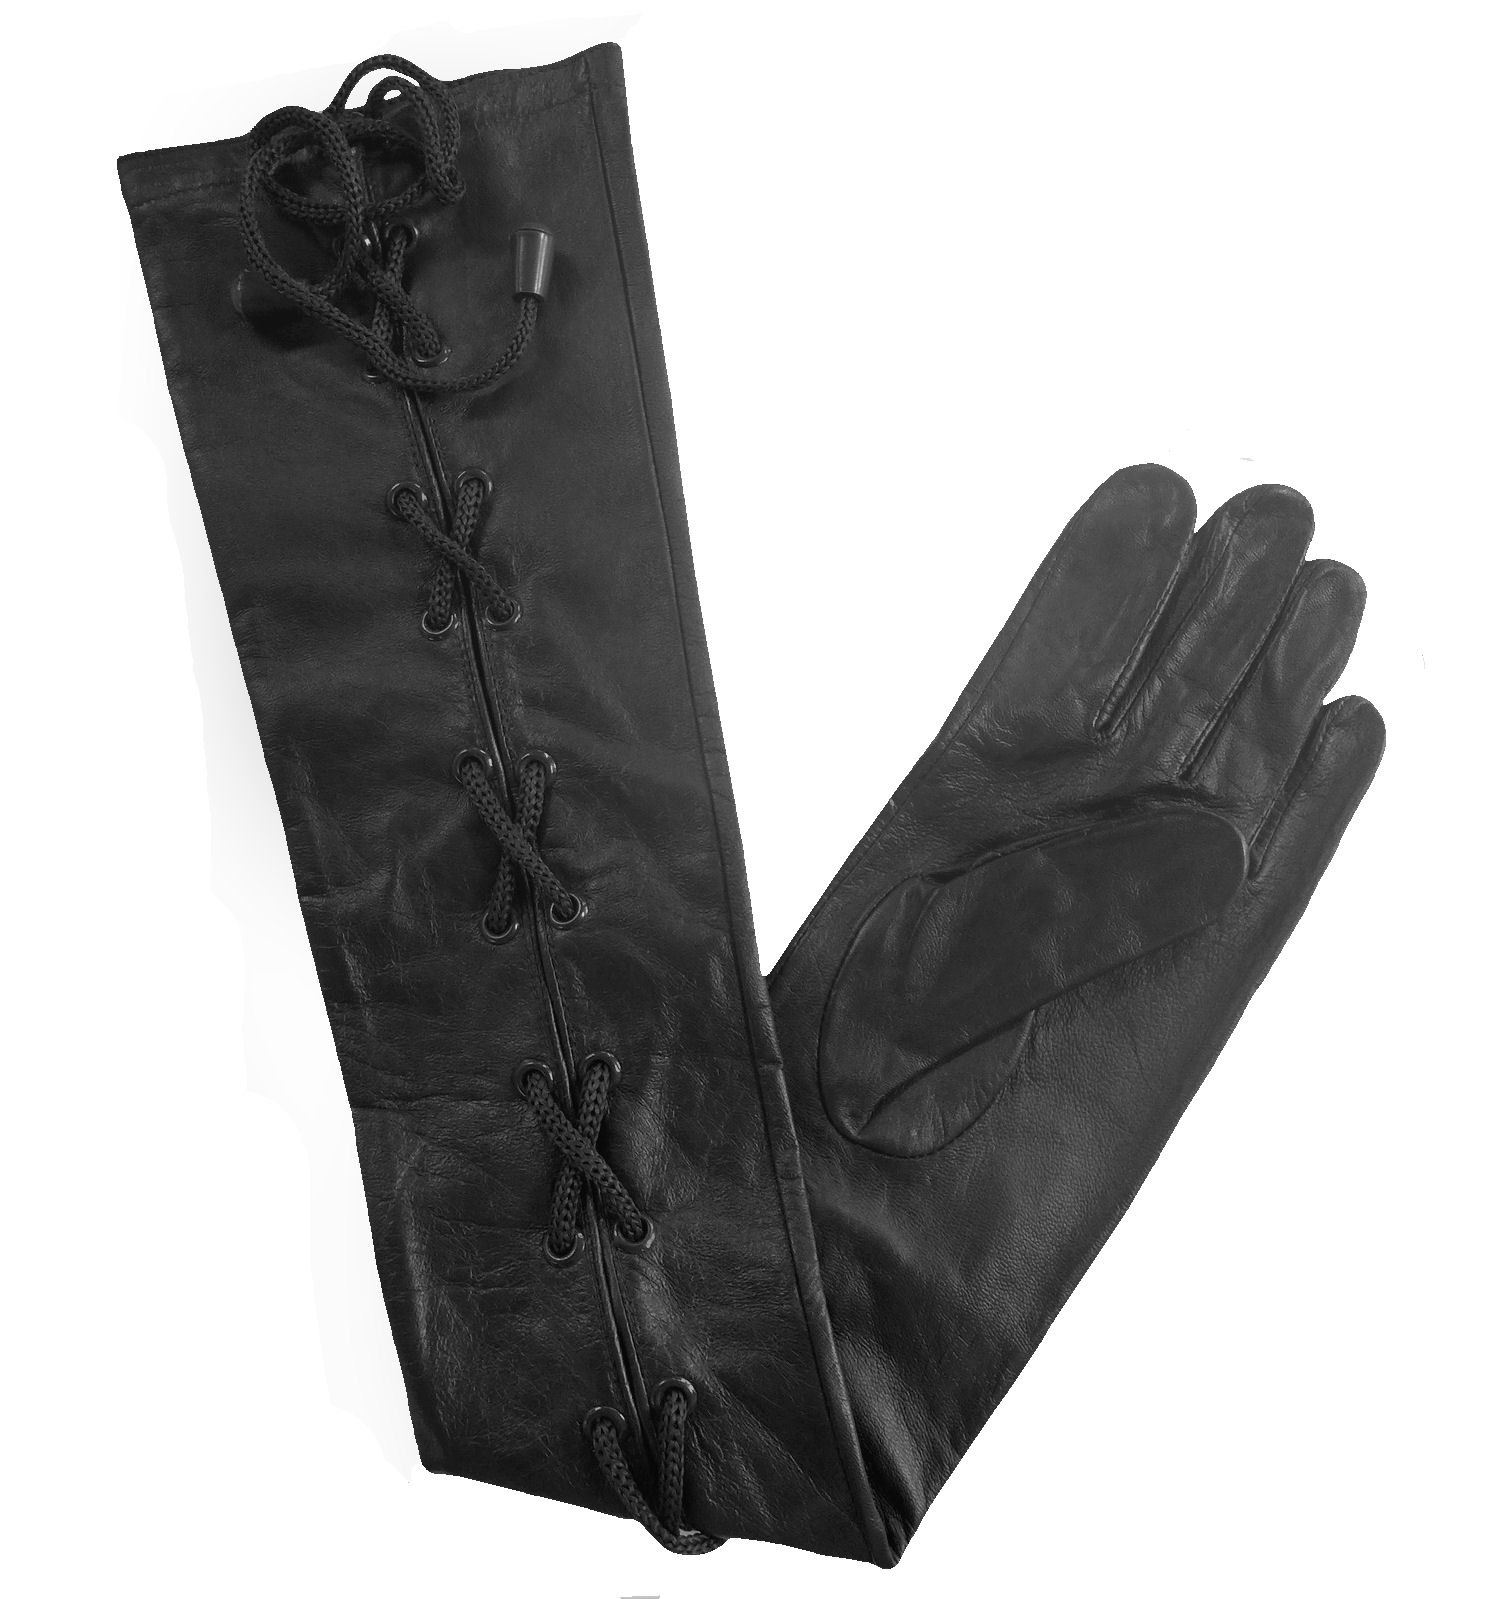 gants longs en cuir noir rouge marron cr me blanc femme homme xs xl ebay. Black Bedroom Furniture Sets. Home Design Ideas